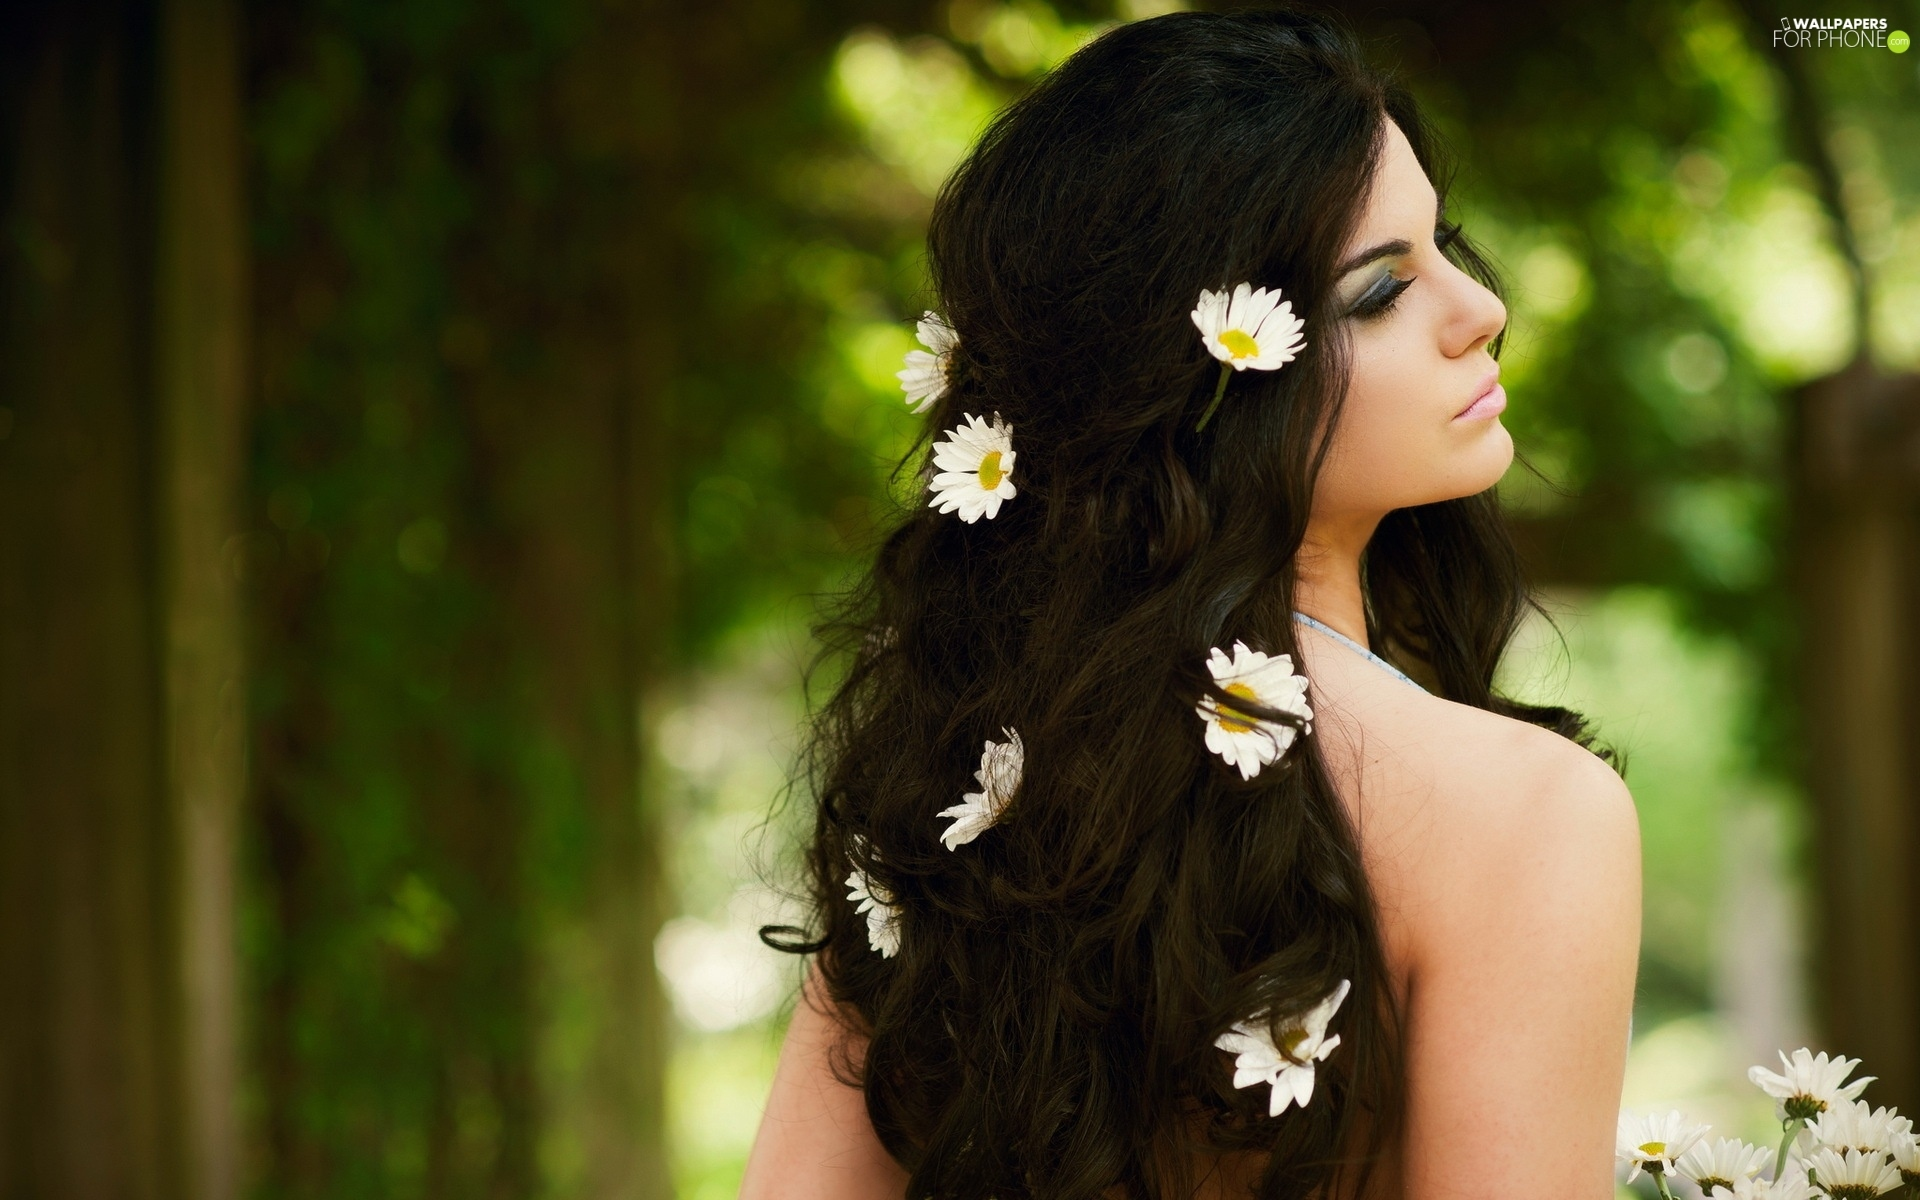 hair, forest, Flowers, We, Women